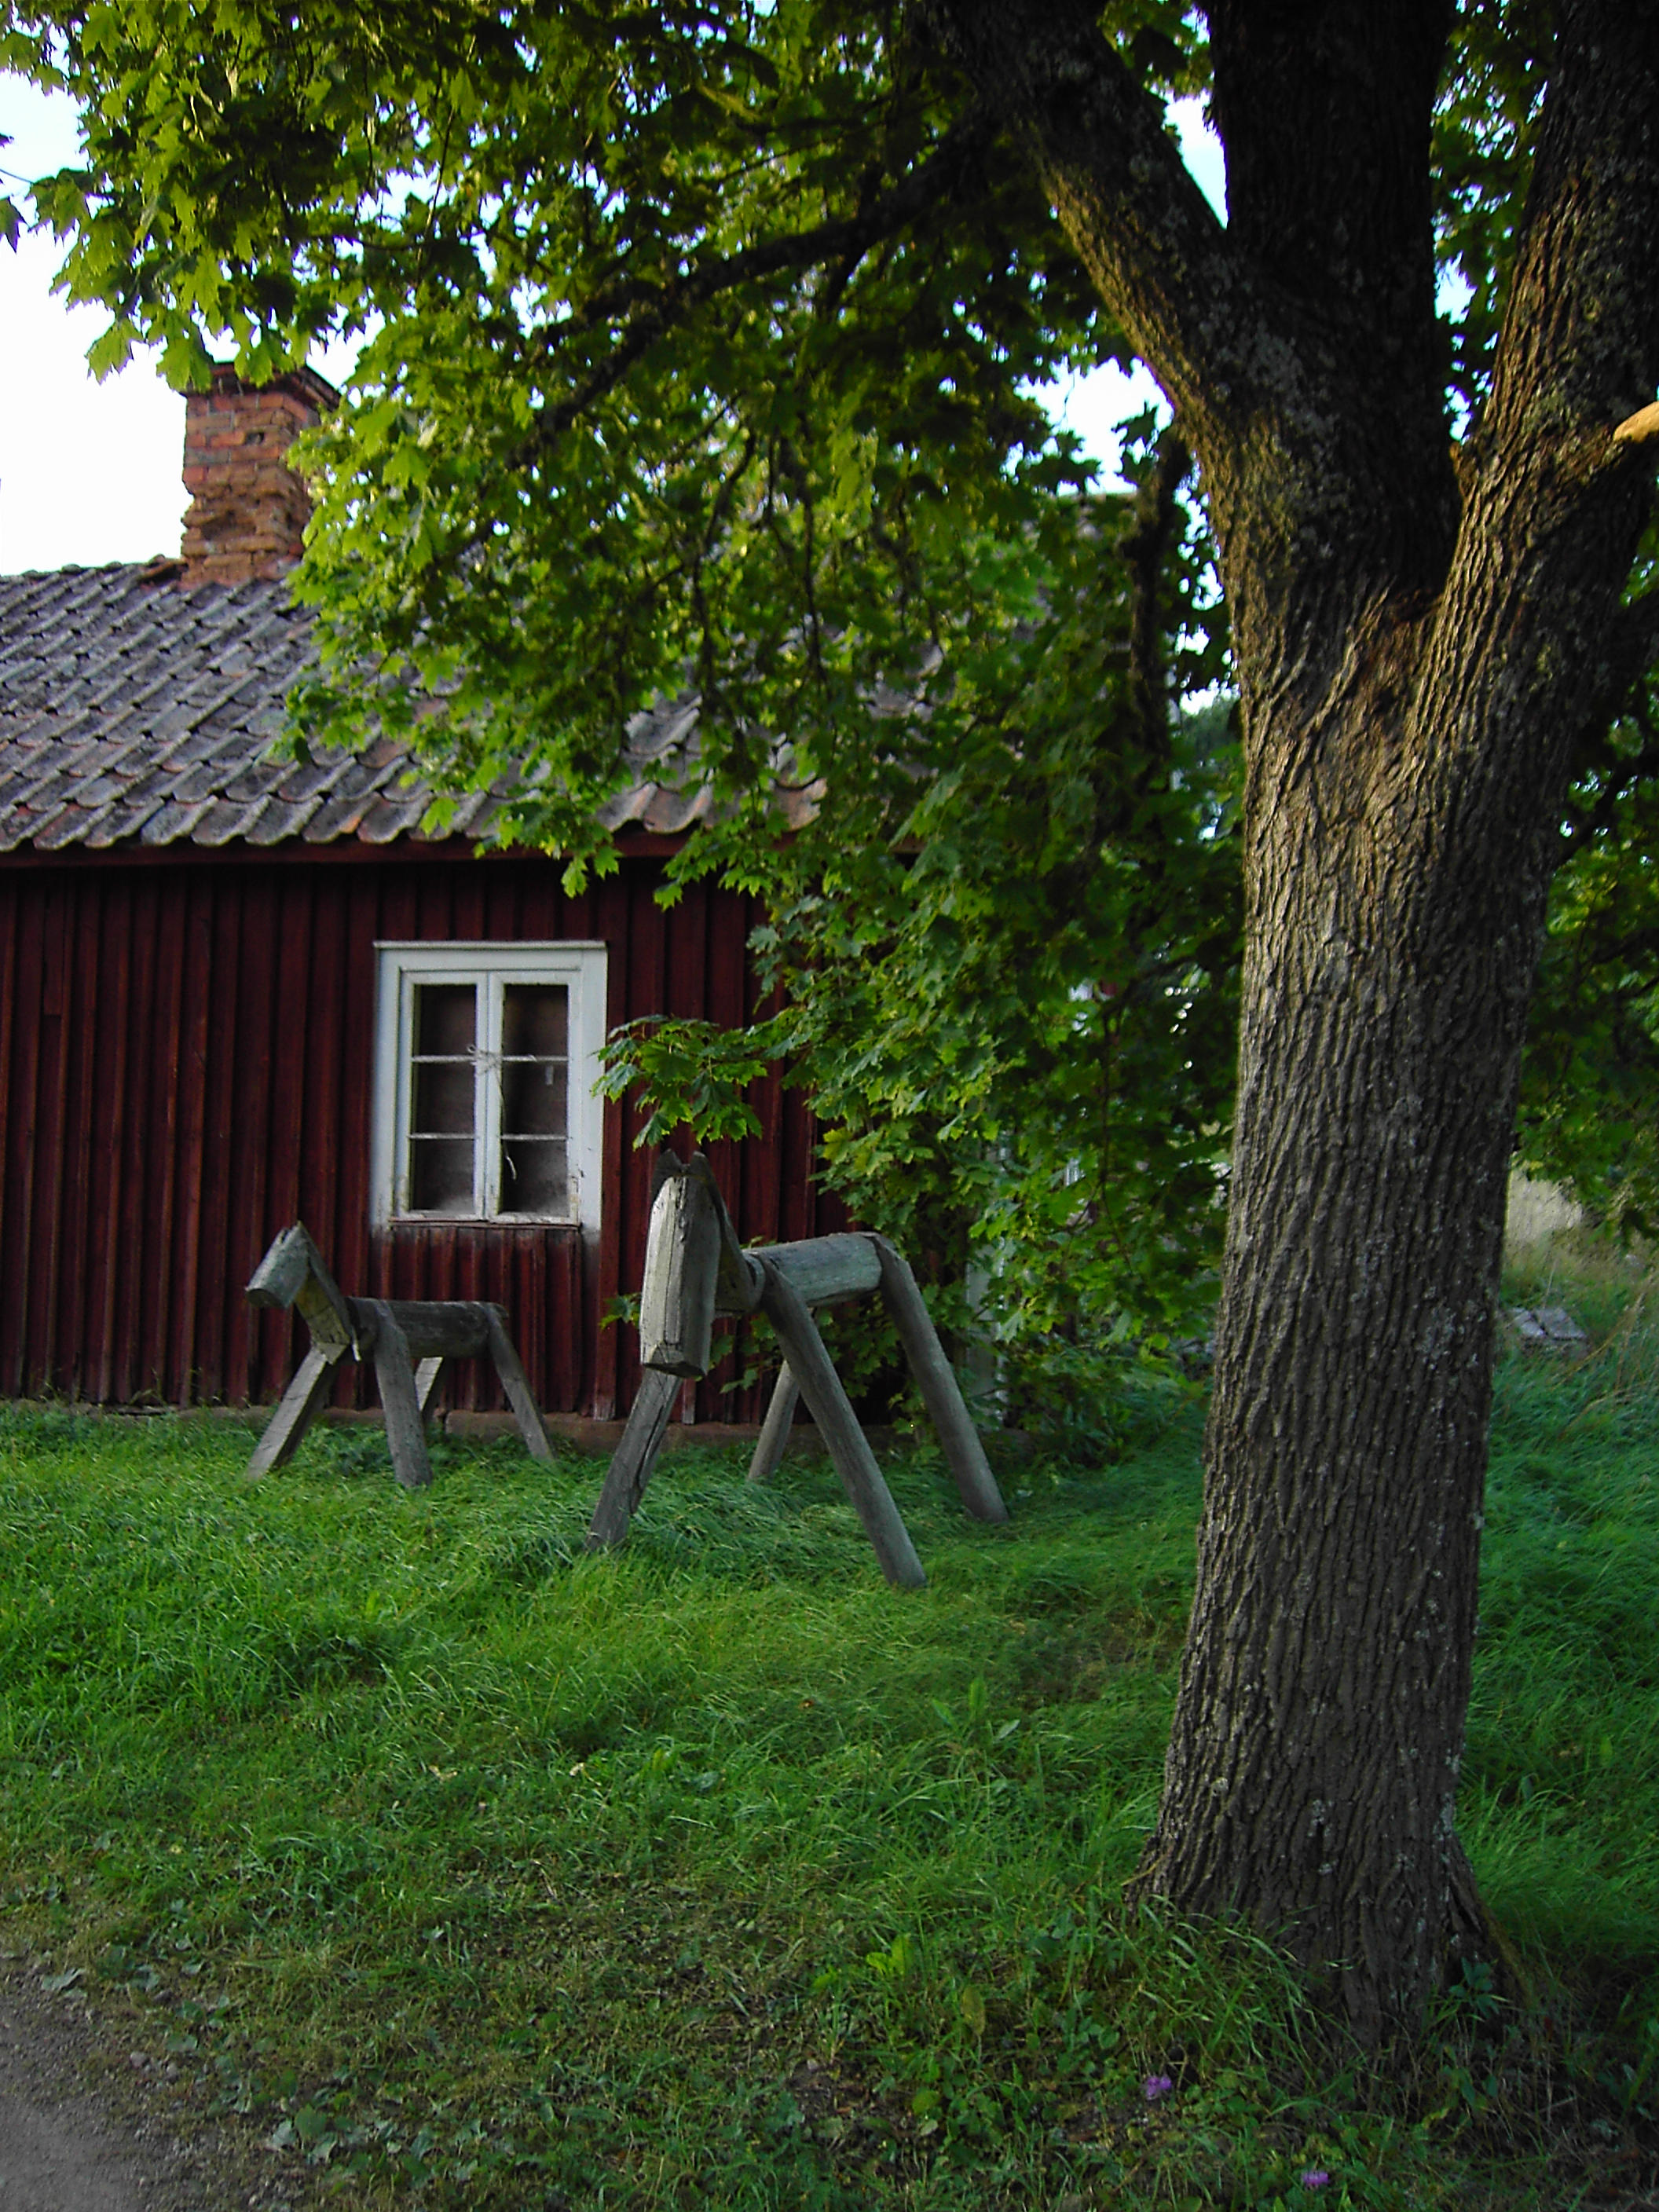 house, tree and wooden horses by akinna-stock